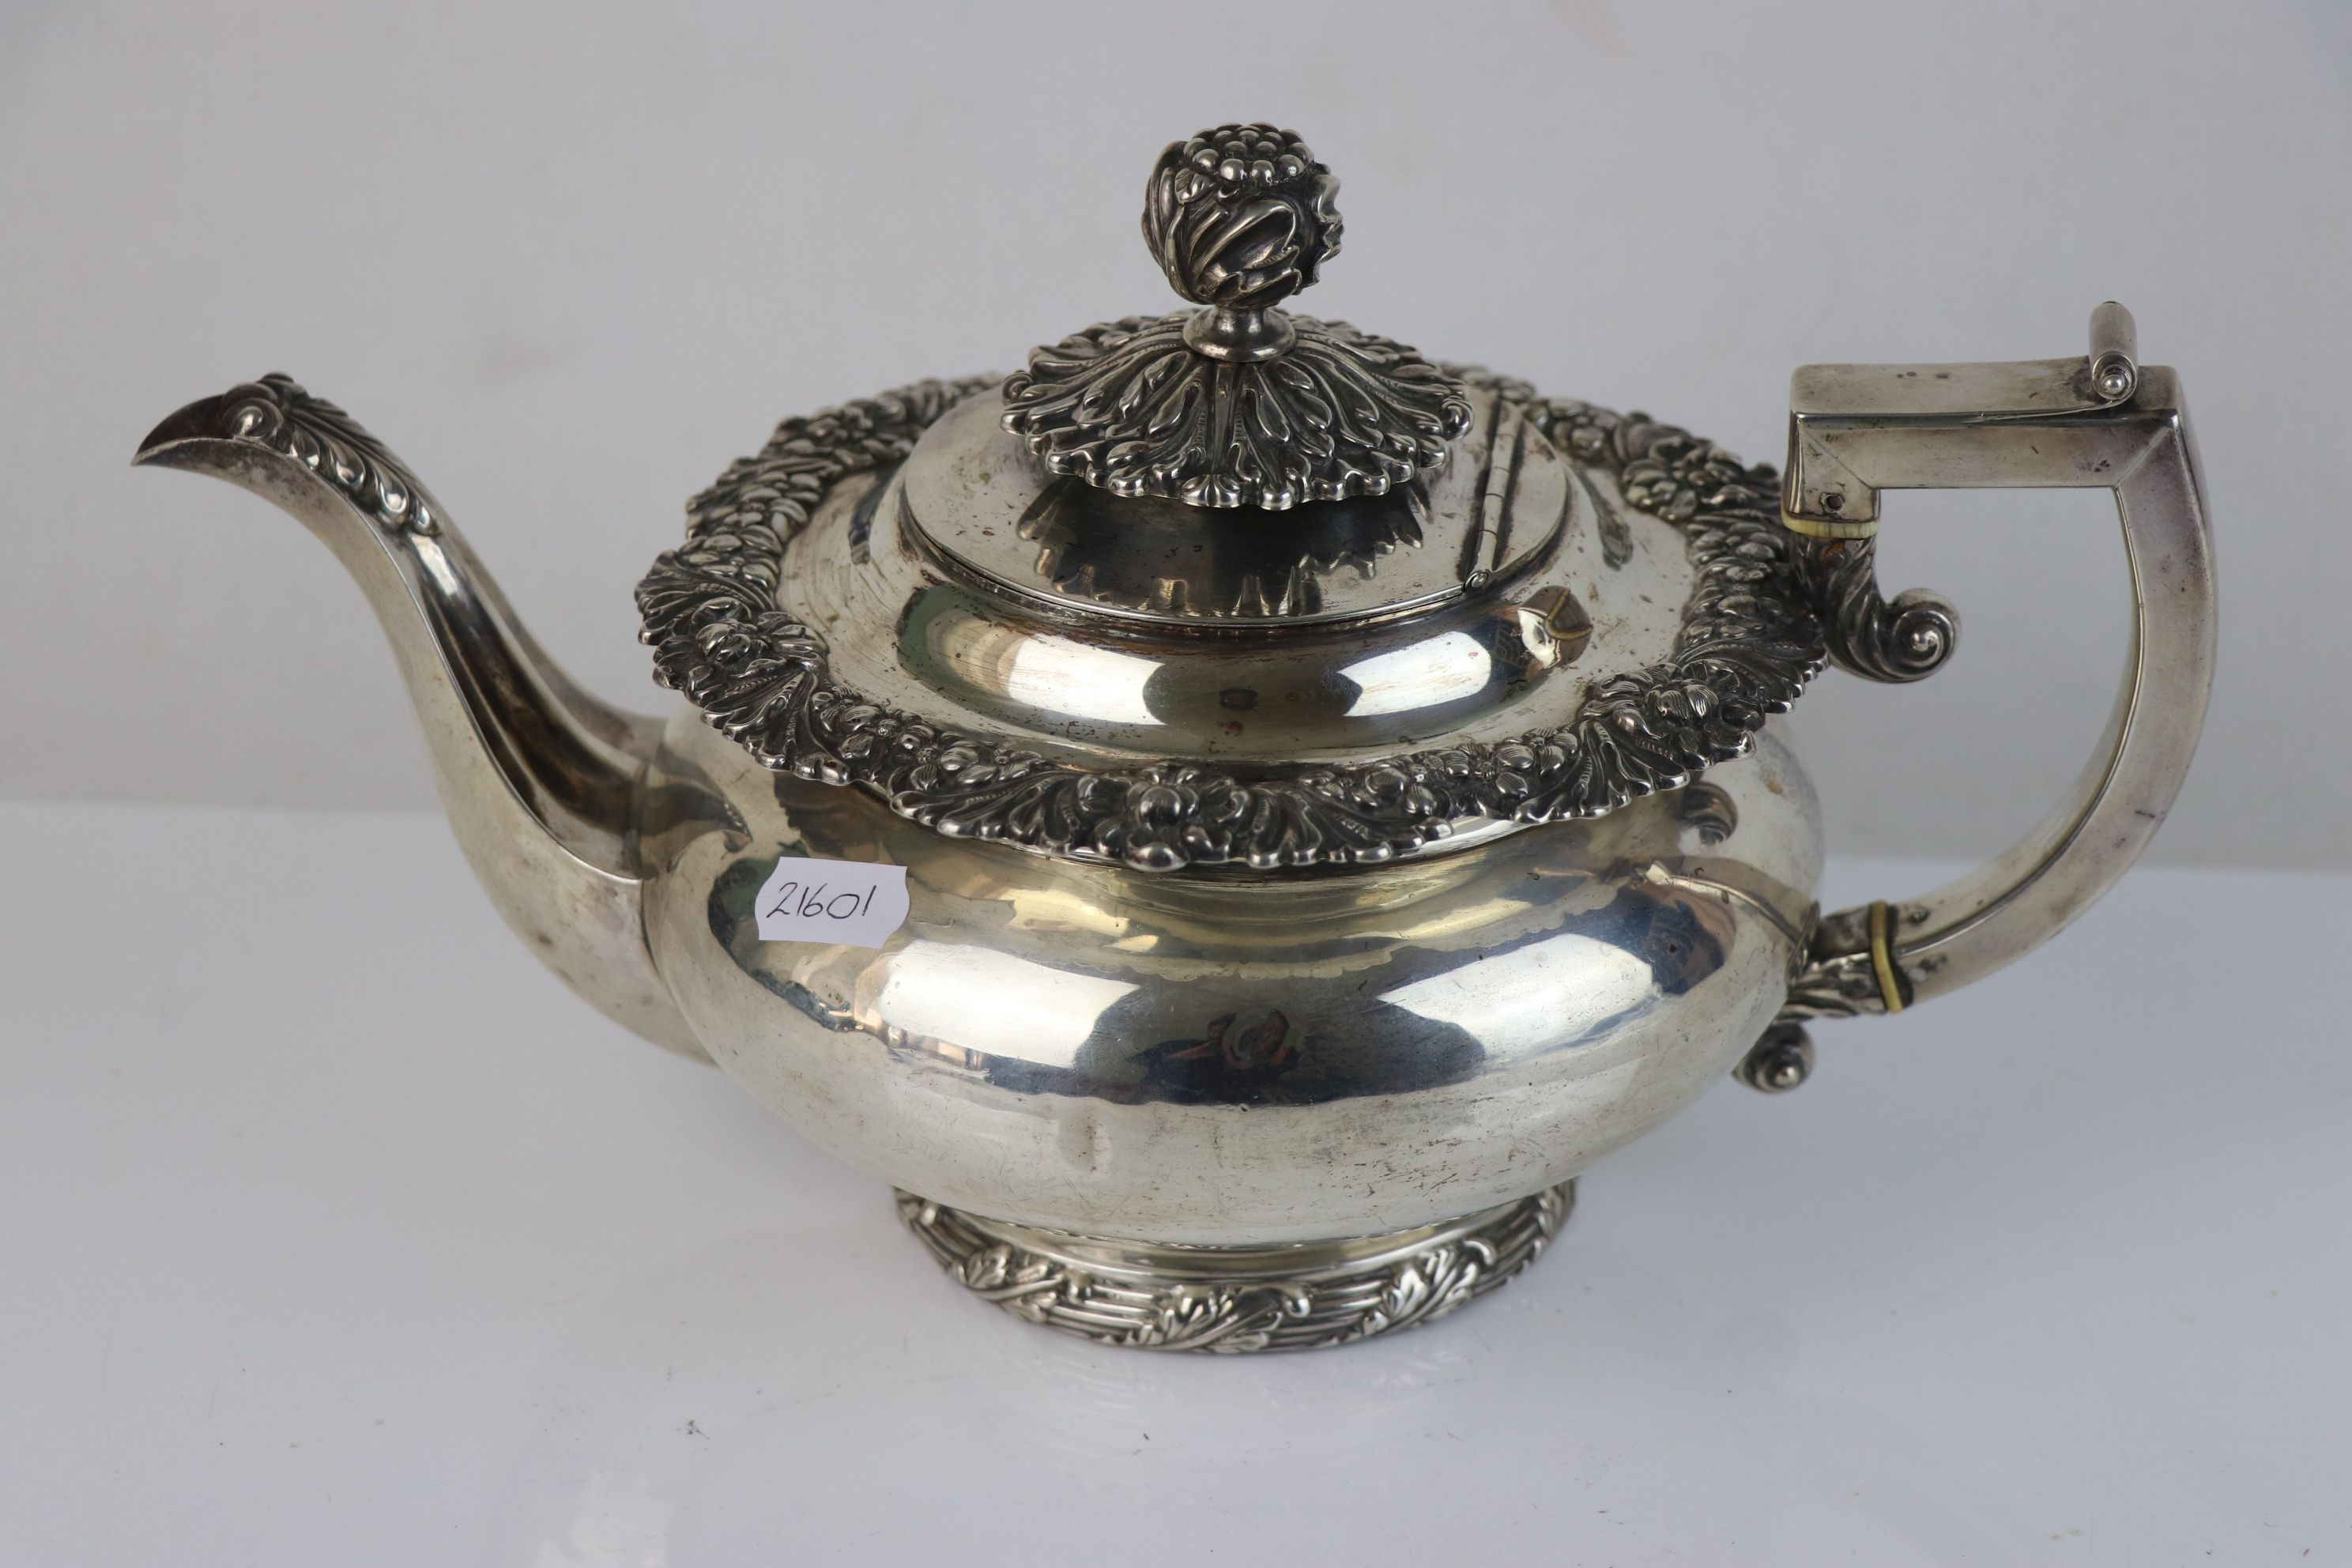 A fully hallmarked sterling silver George III teapot, maker mark rubbed and indistinct, assay marked